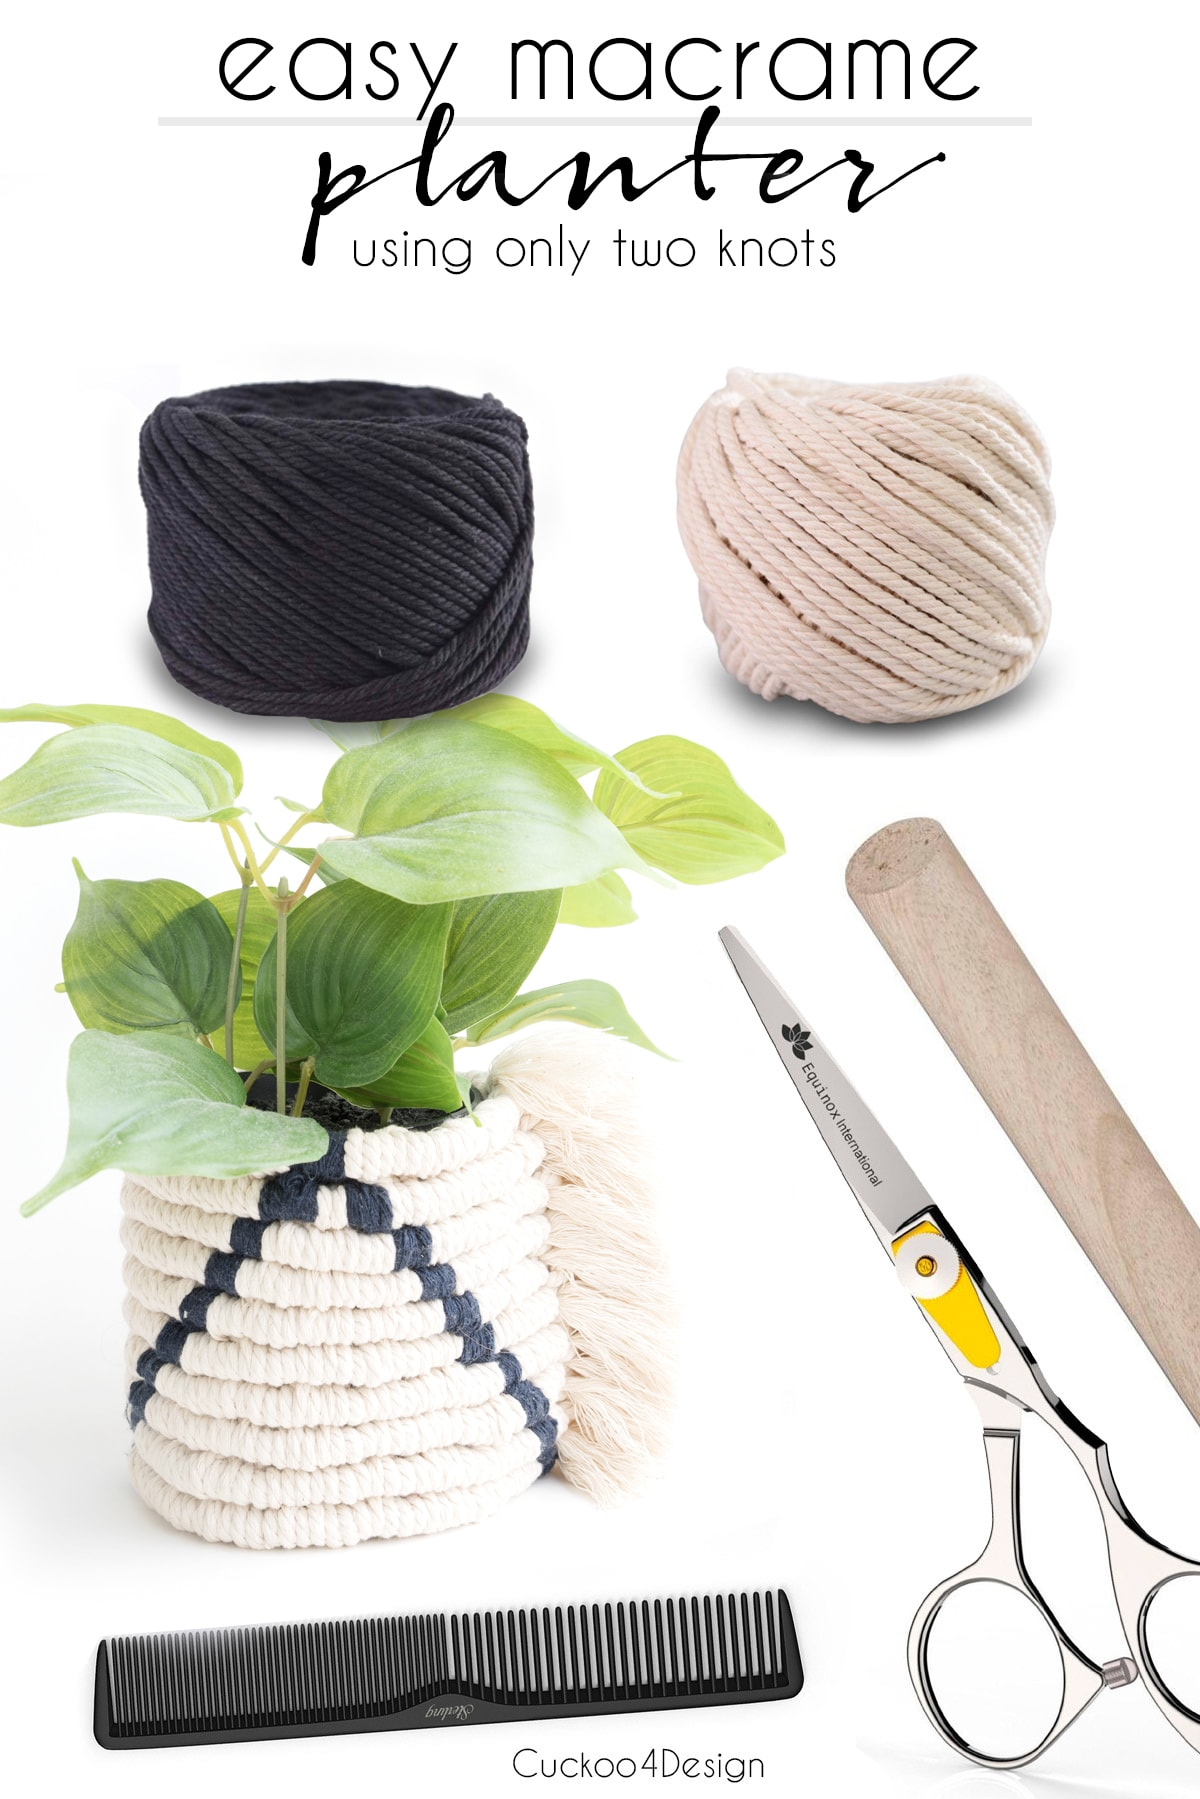 supplies needed for easy macrame planter using only two knots